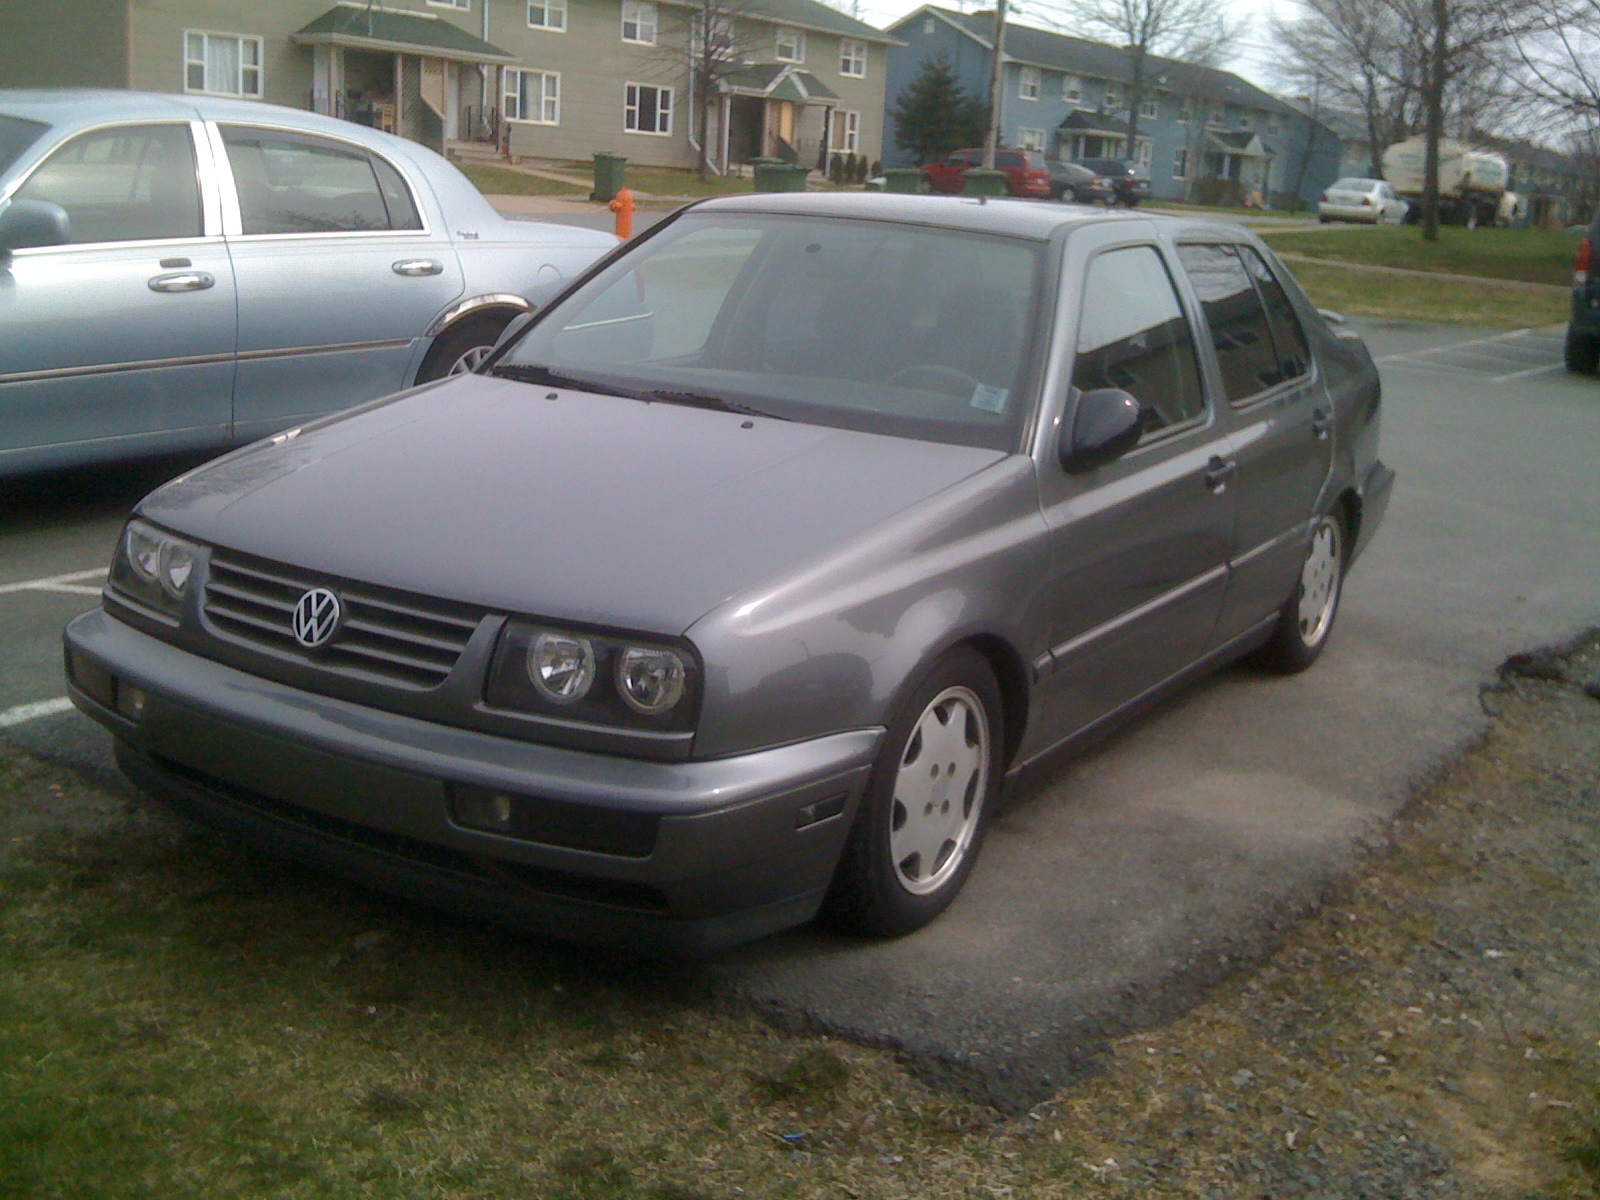 Volkswagen Jetta 2.0 1998 photo - 9